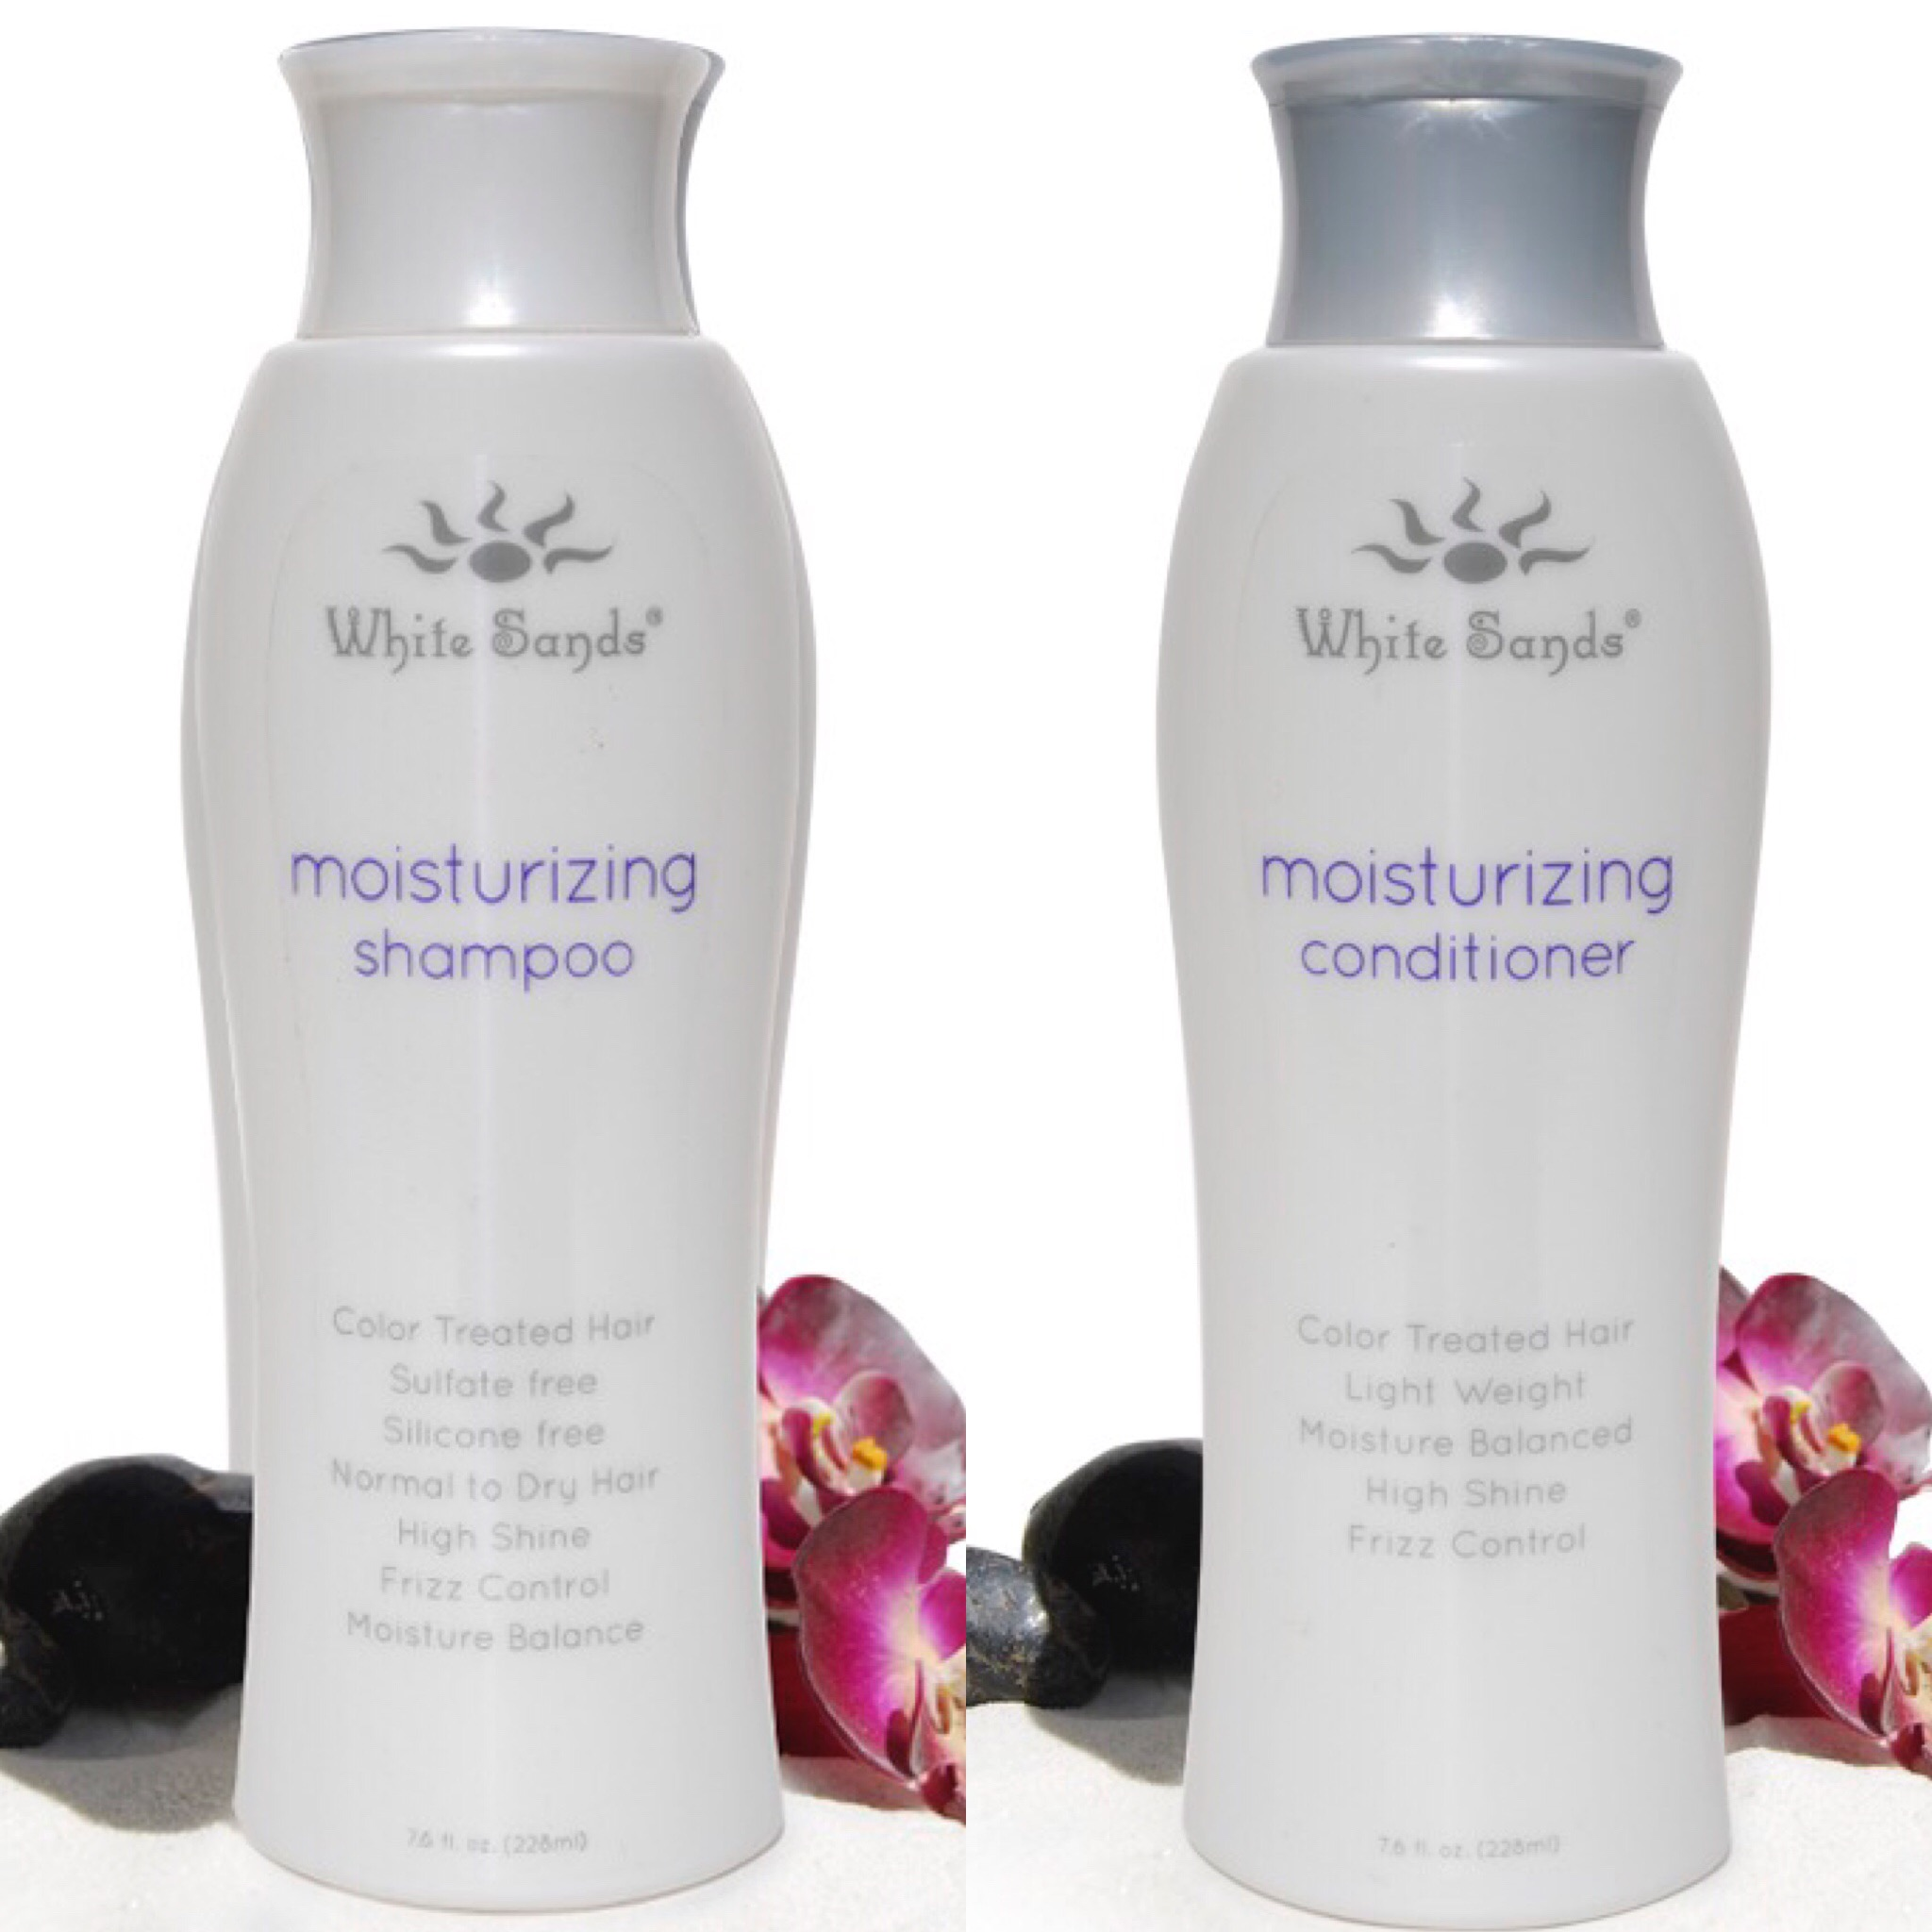 Moisturizing Shampoo/Conditioner